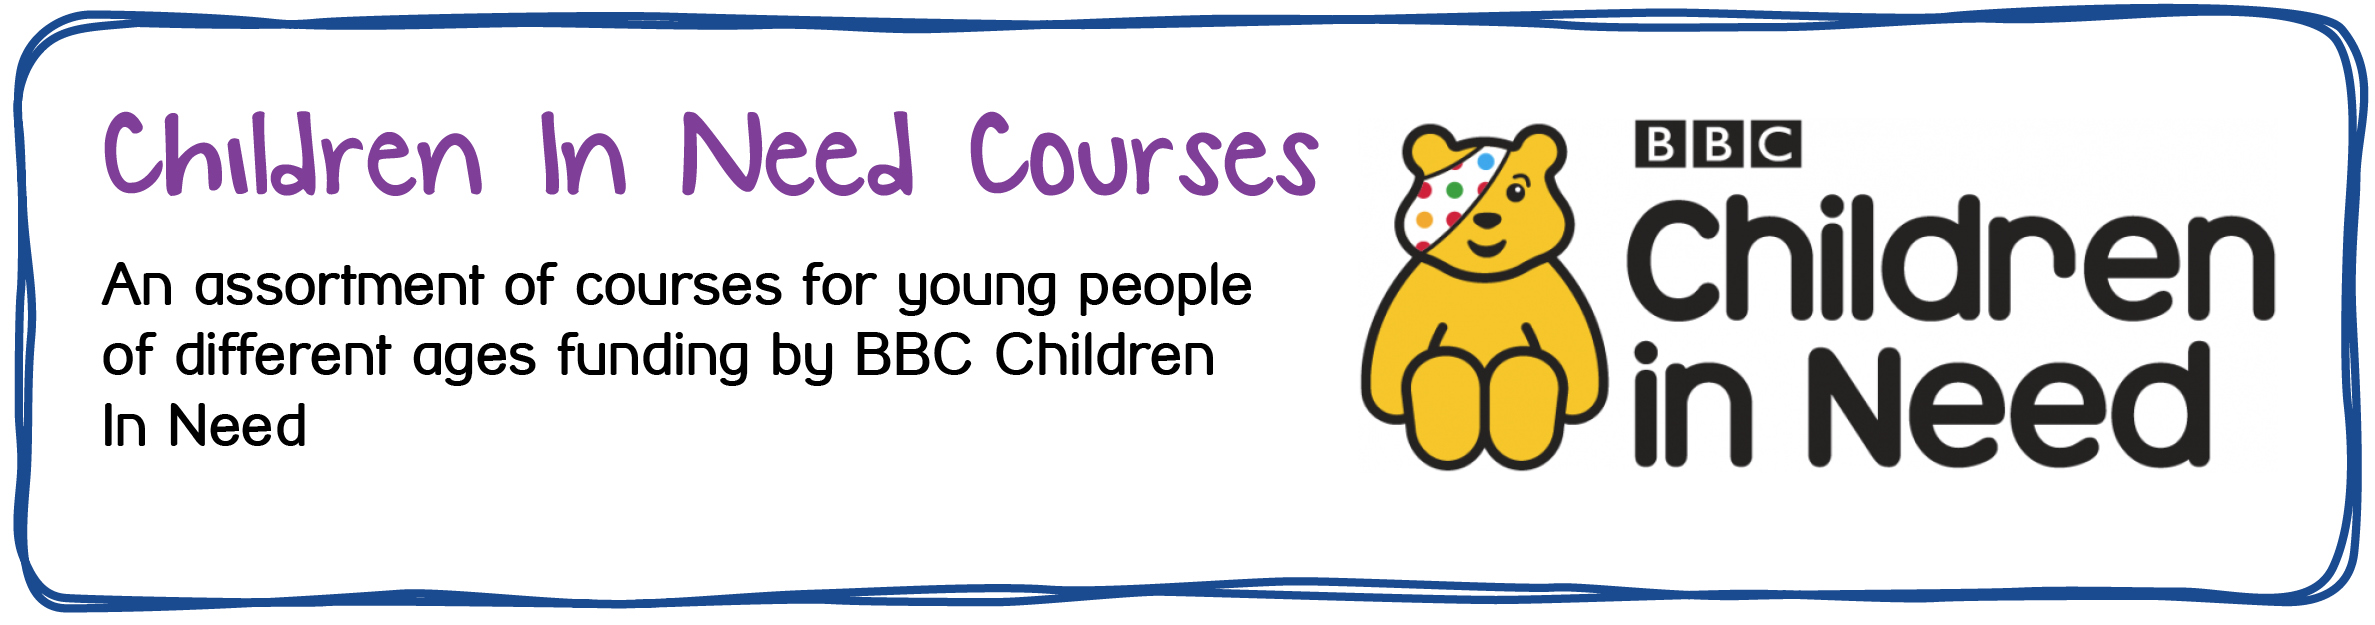 Youth Services - CIN Courses. An assortment of courses for young people of different ages funded by BBC Children In Need.